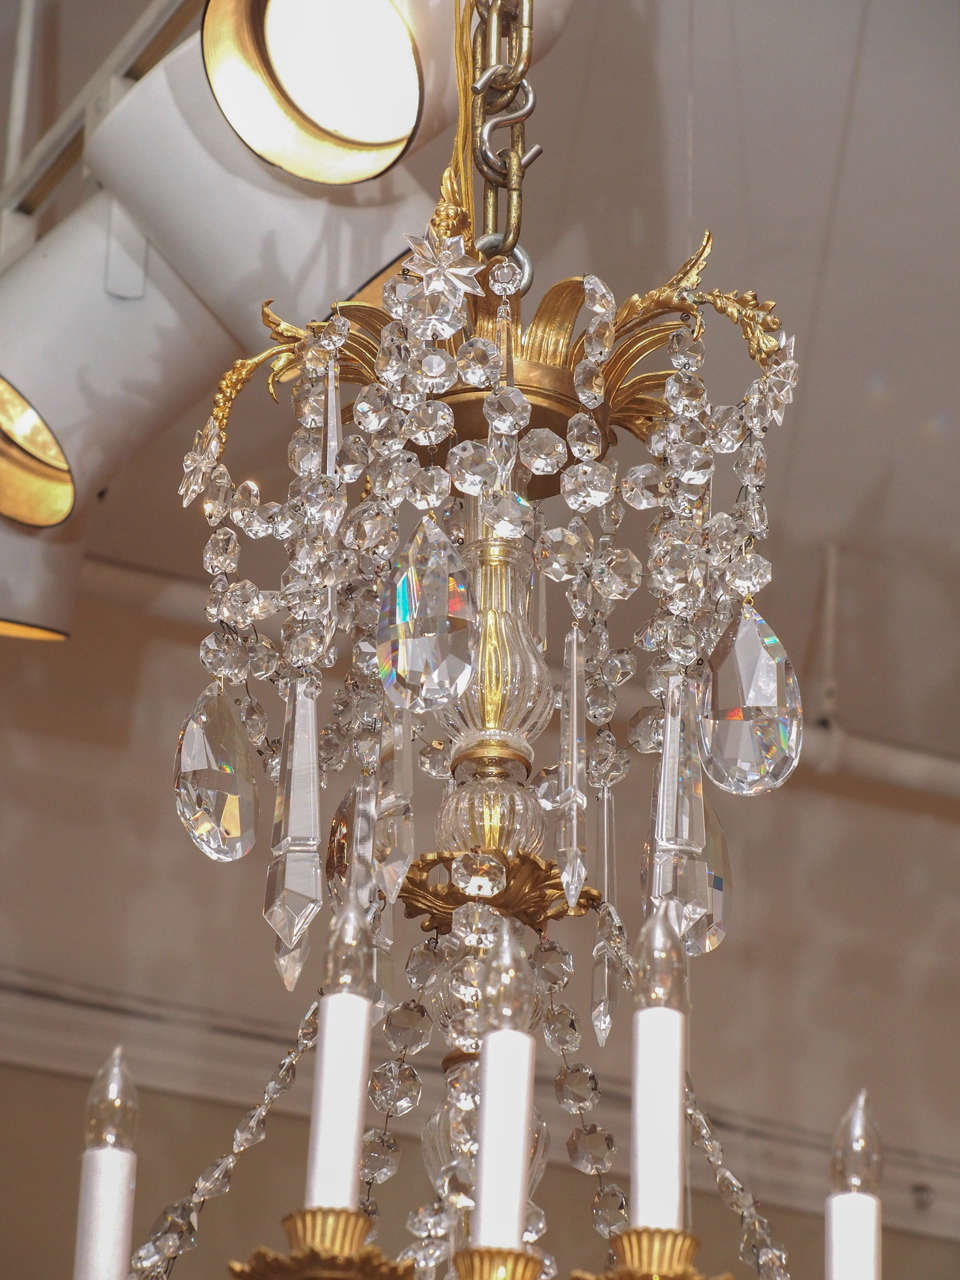 Antique French Baccarat Crystal and Bronze D'ore 24 Light Chandelier circa 1890 3